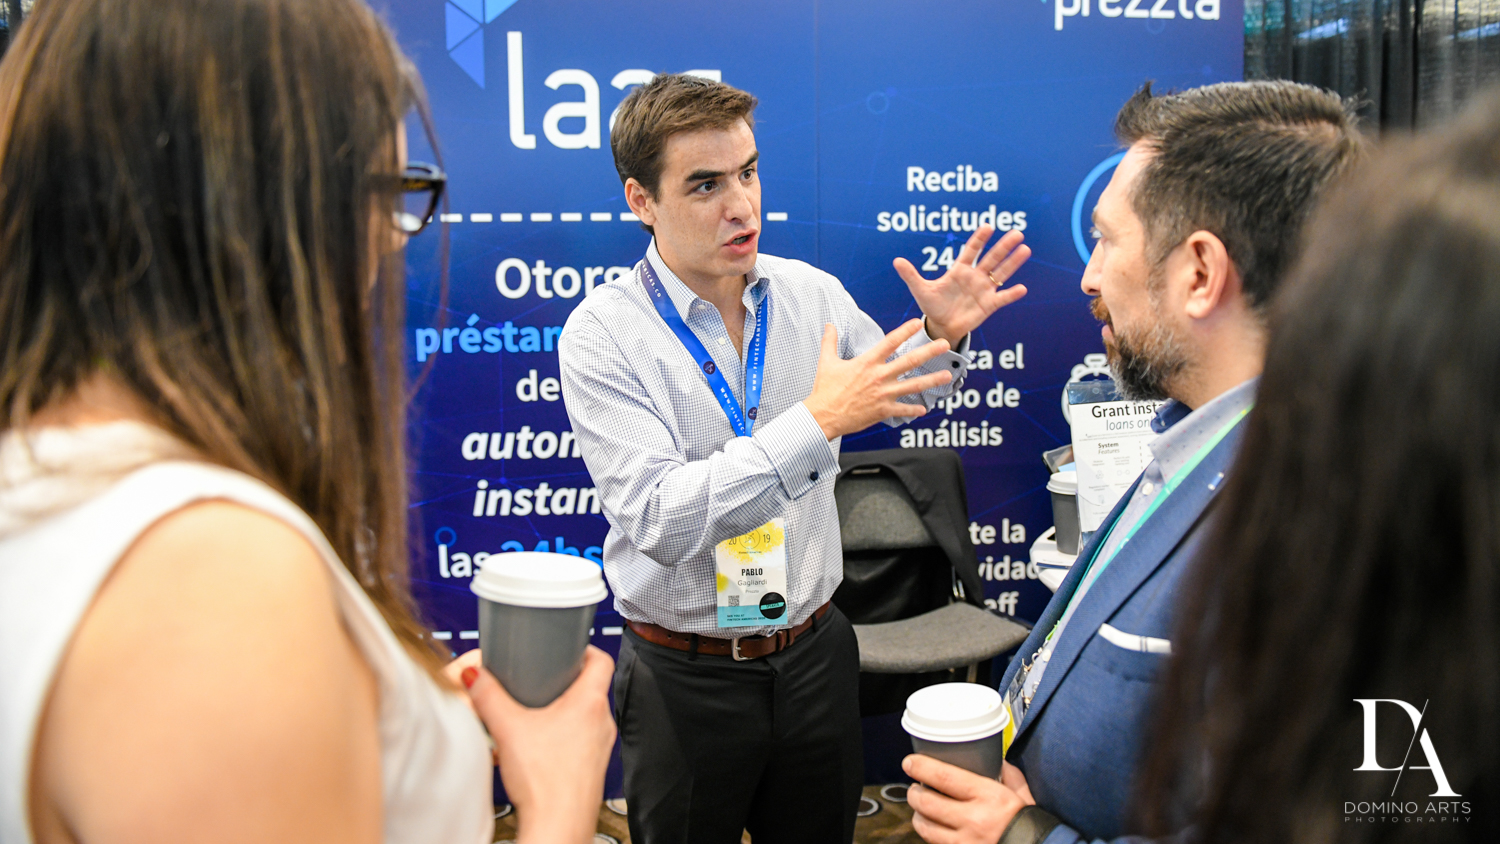 learning at Fintech Americas Banking Conference Miami by Domino Arts Photography